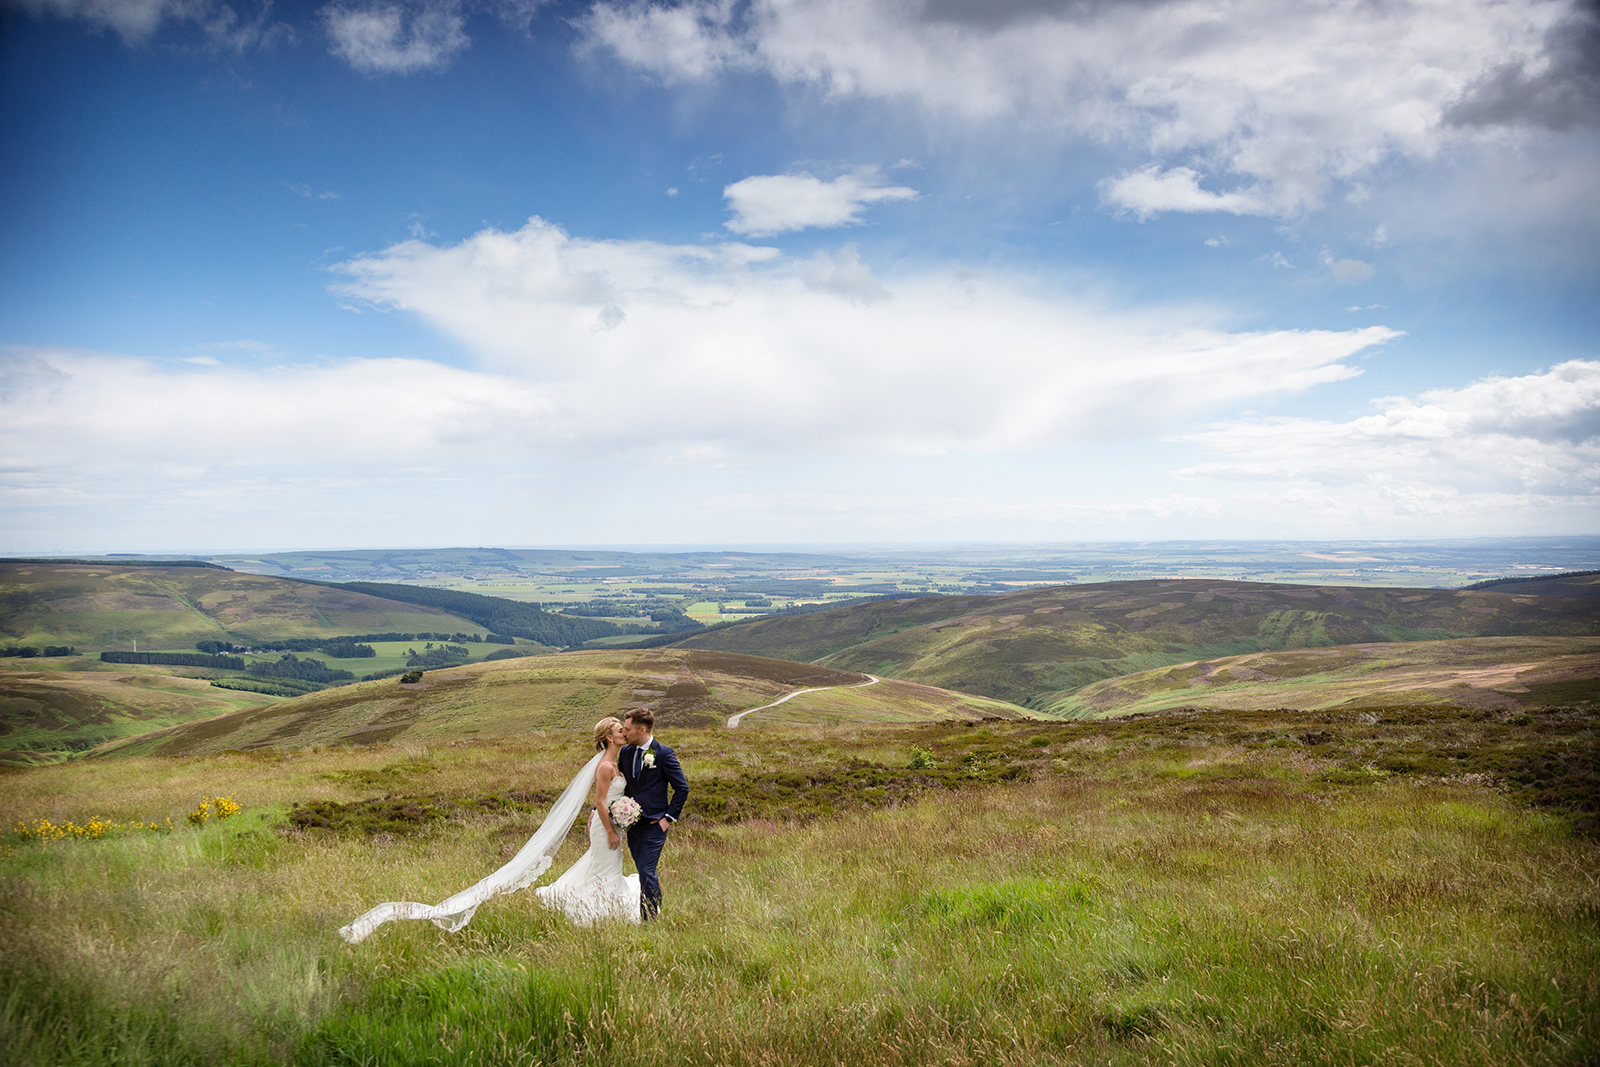 Drumtochty Castle Wedding - Aberdeenshire wedding venue, Scotland